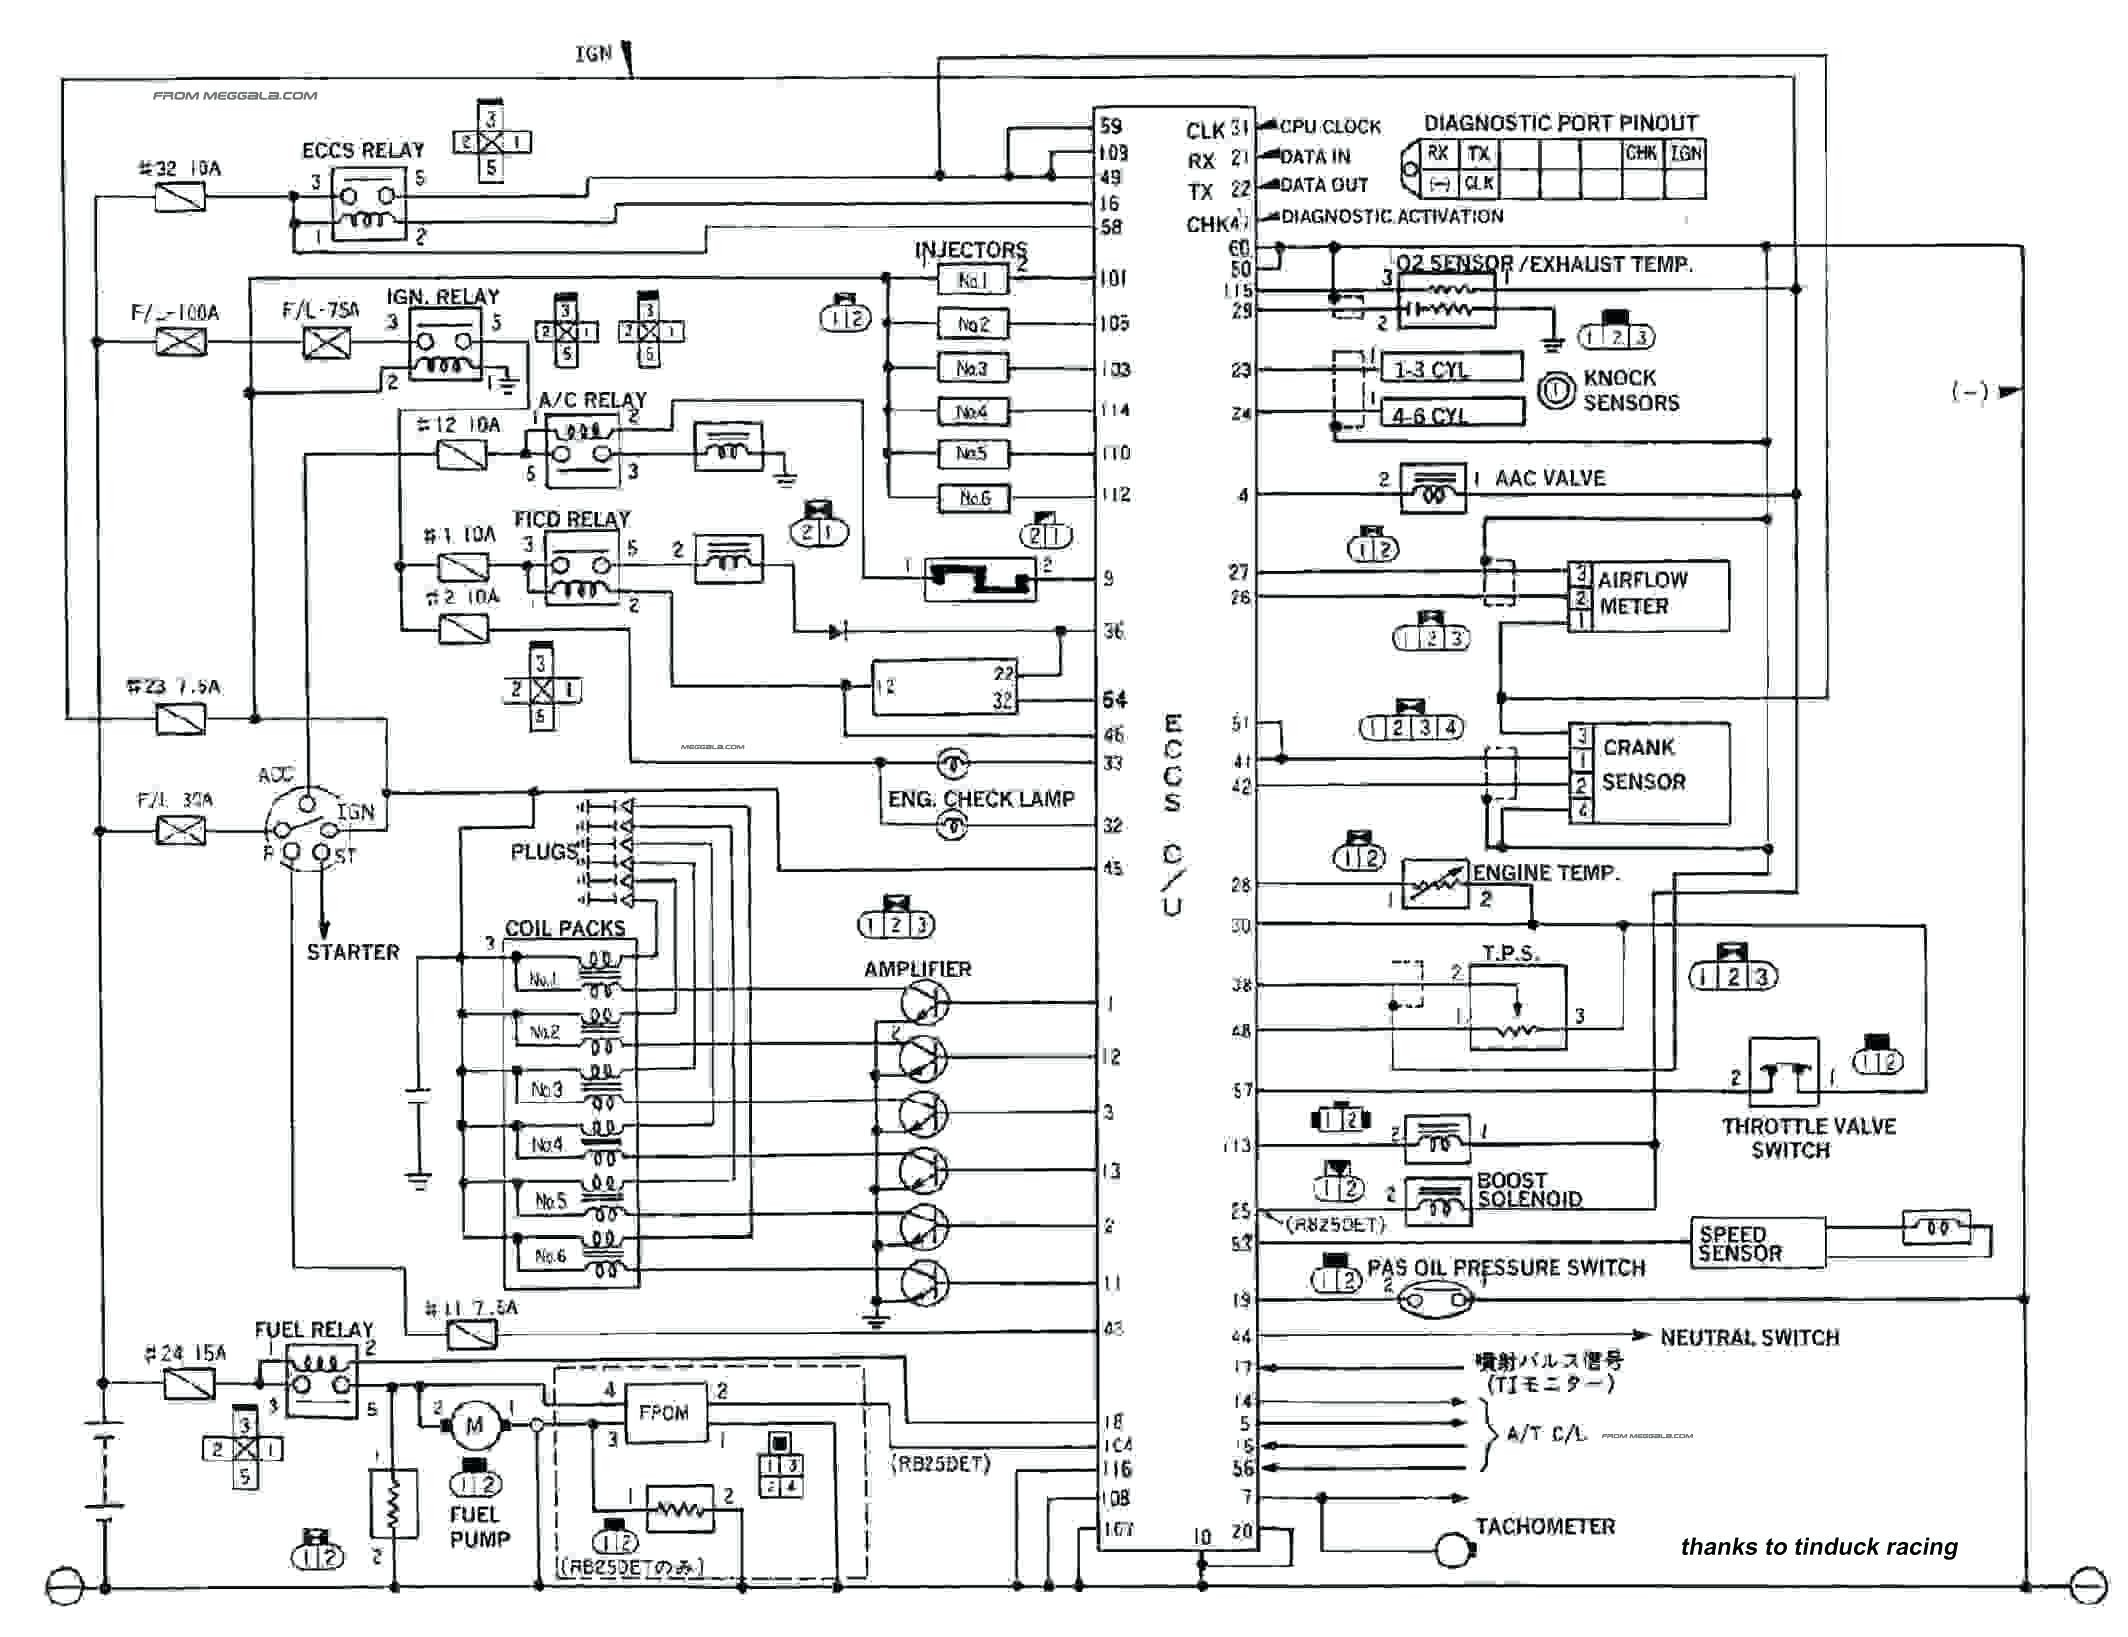 [DIAGRAM] Vn Ecu Wiring Diagram FULL Version HD Quality